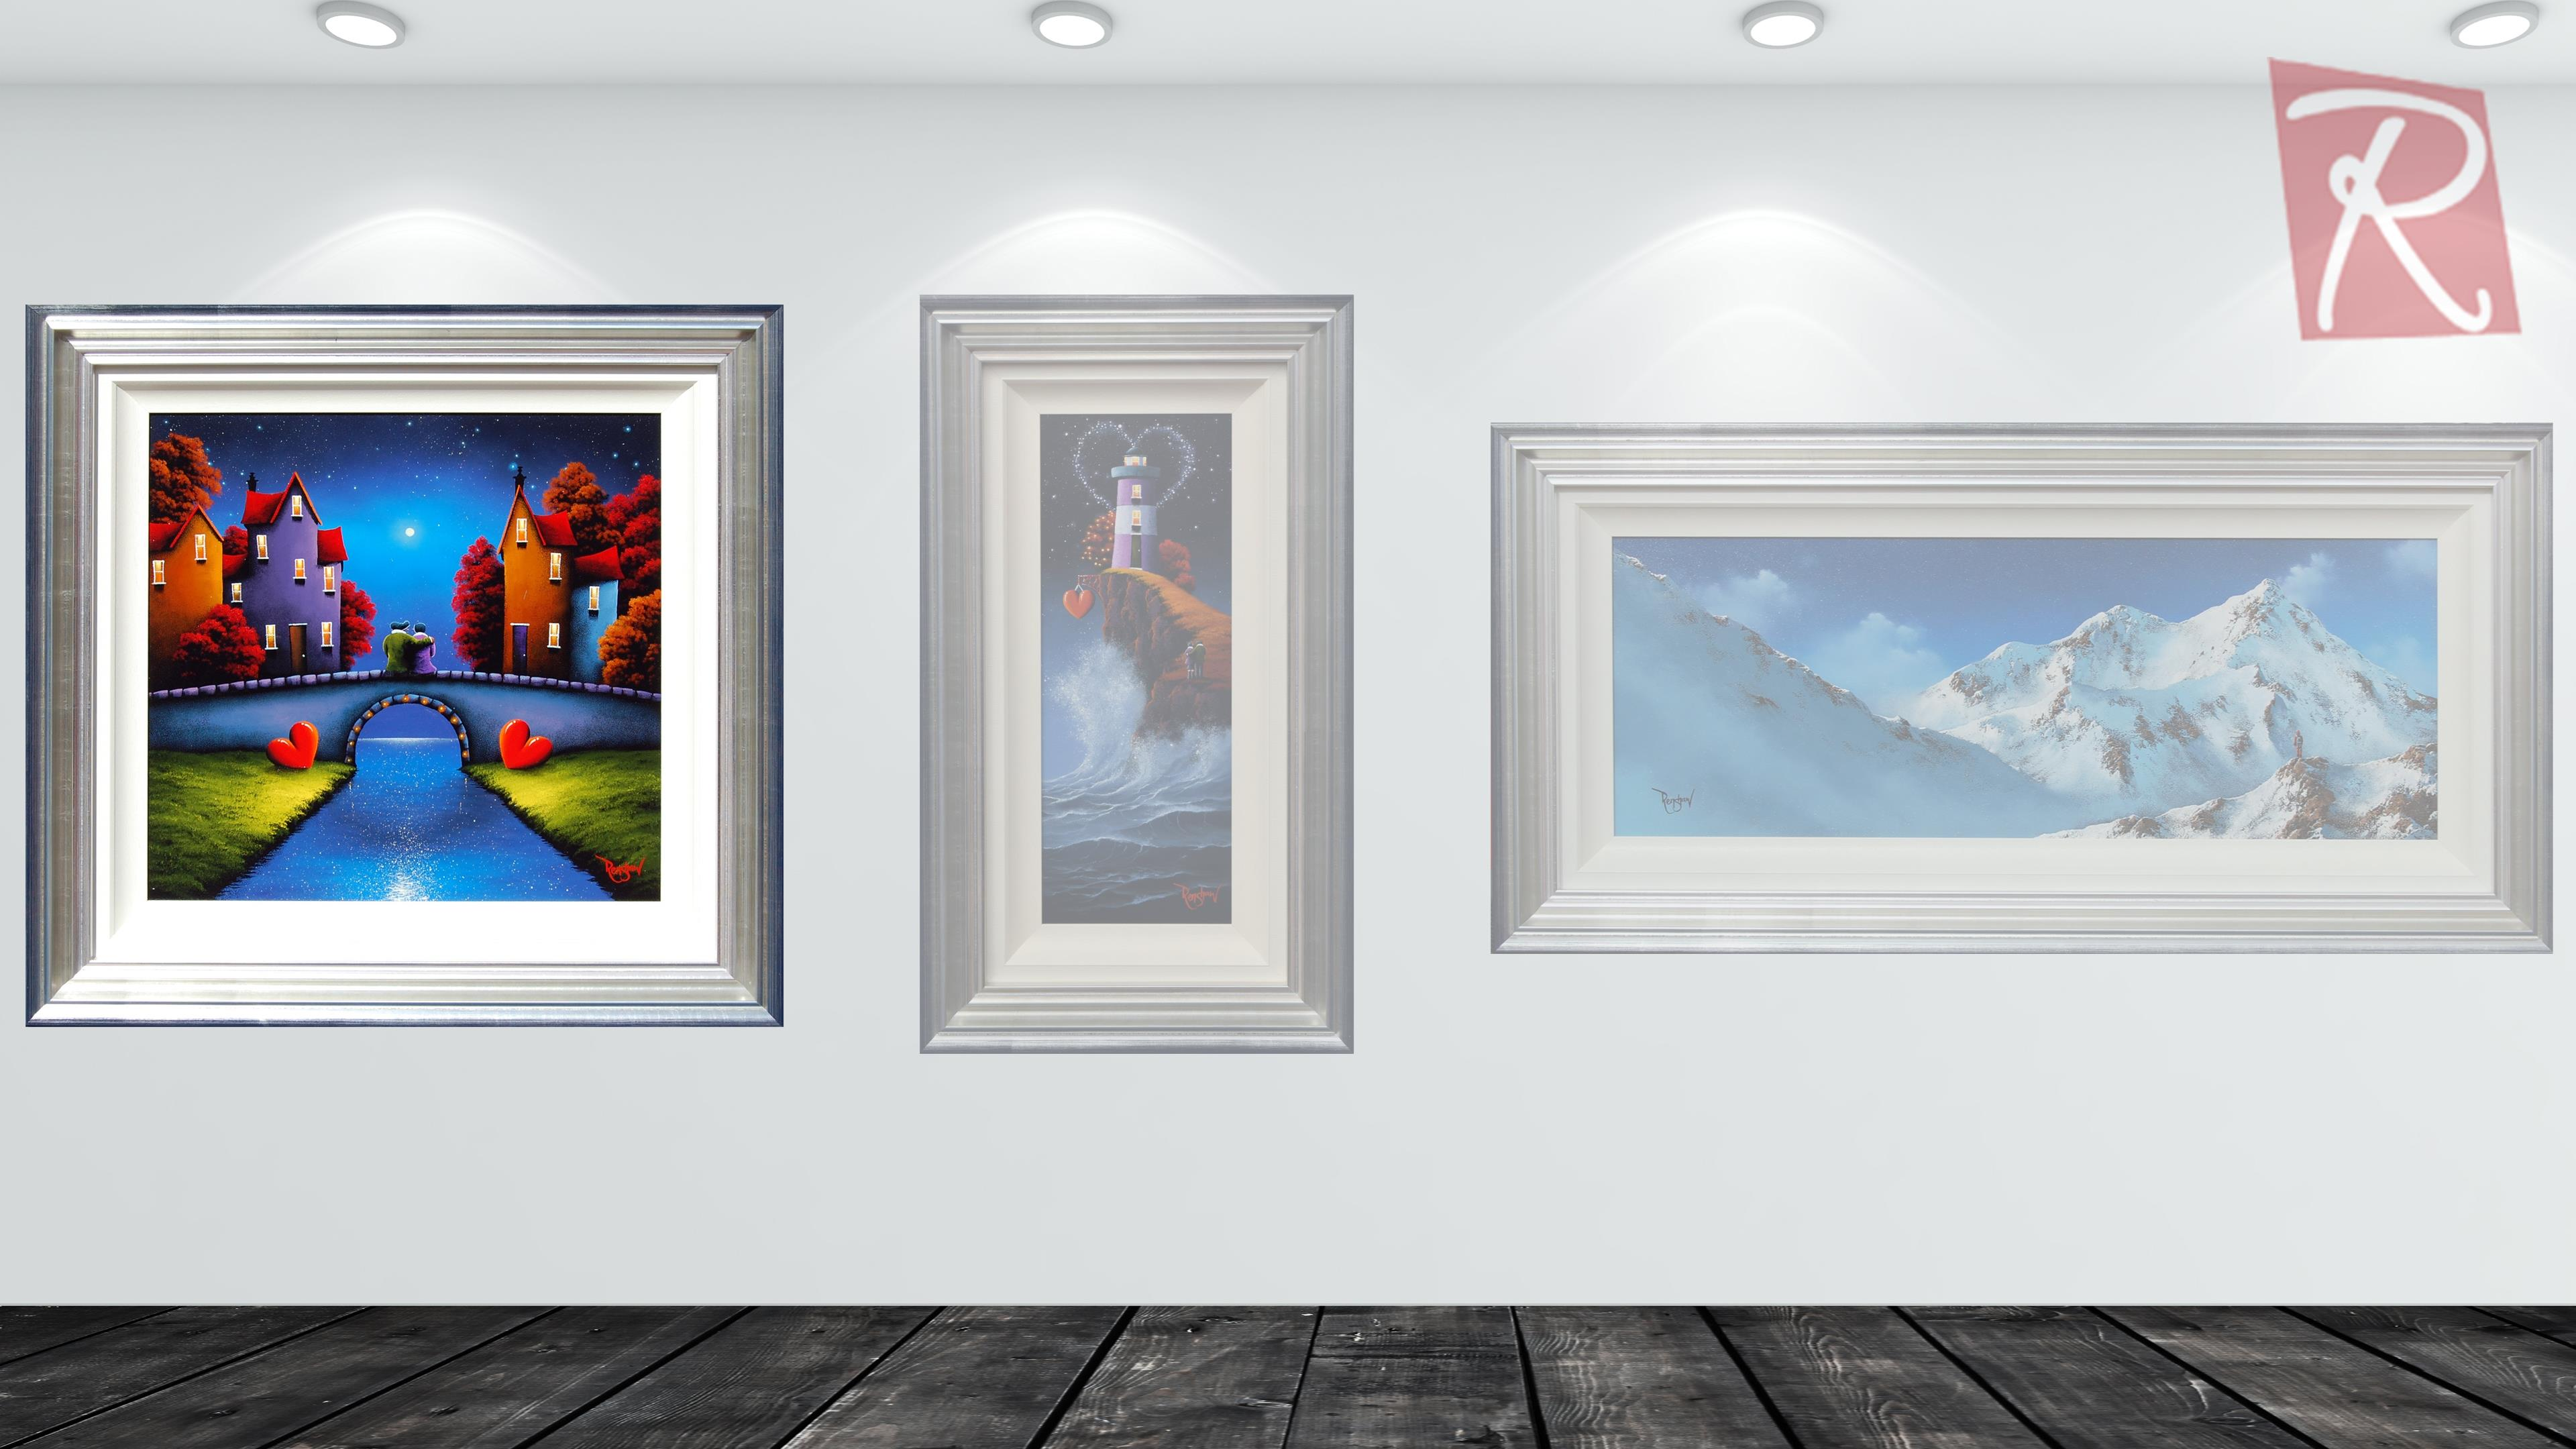 David Renshaw 'Voyage to Discovery' Exhibition 10th Sept 2-4pm